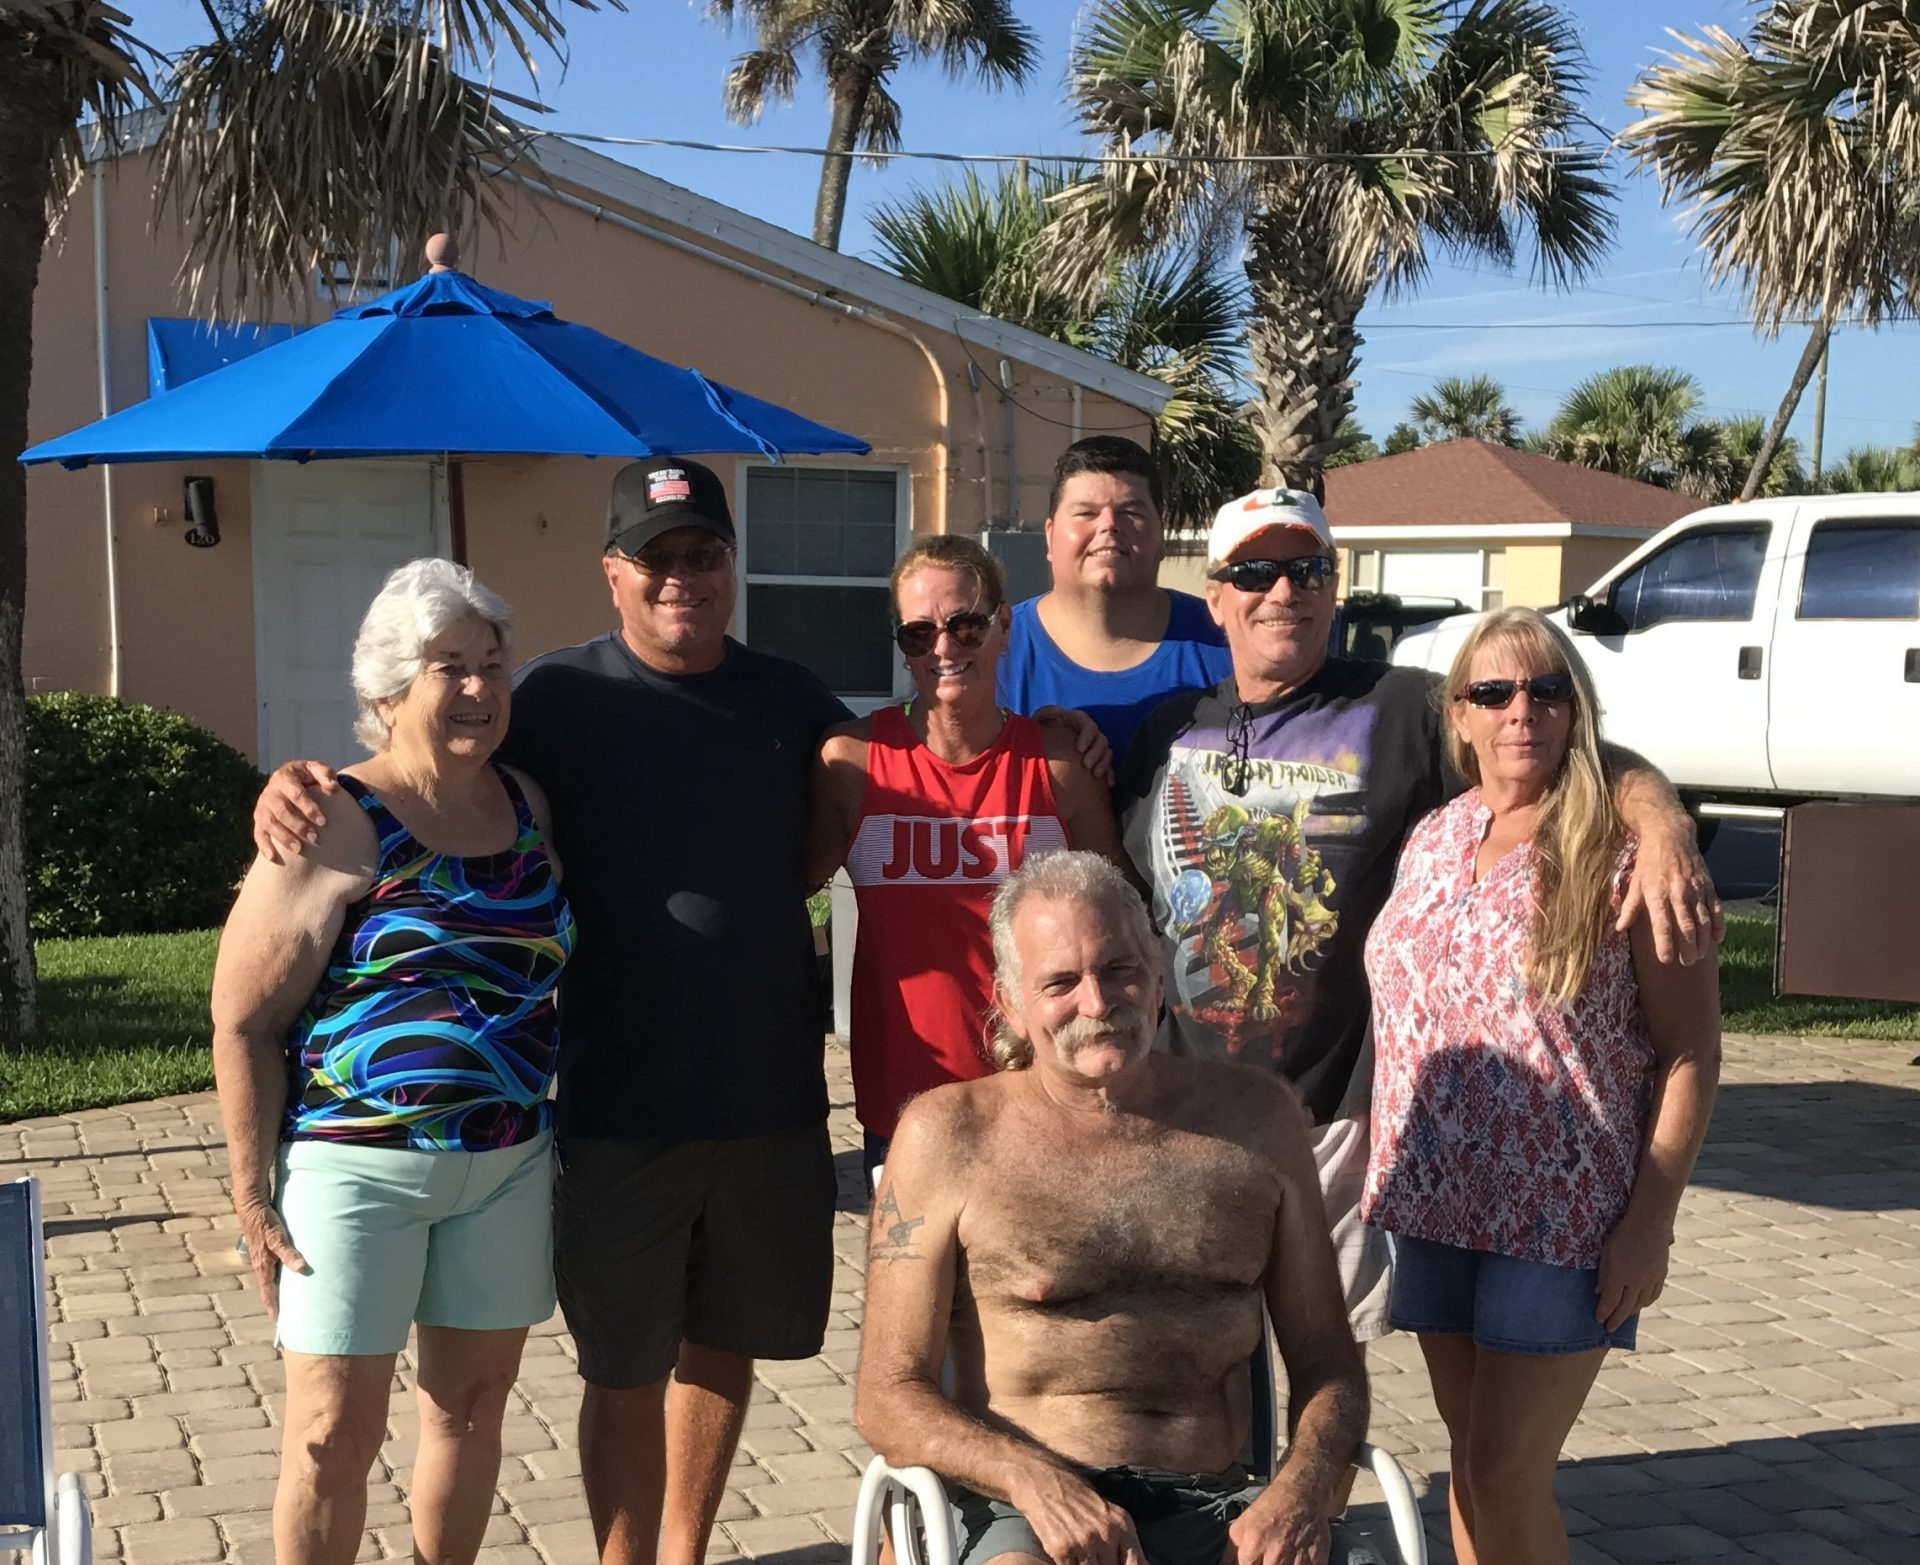 Family reunion memories <br /> Pat, Mike, Bobbi, Michael, Todd,Pam and Dean ! Great times!❤️